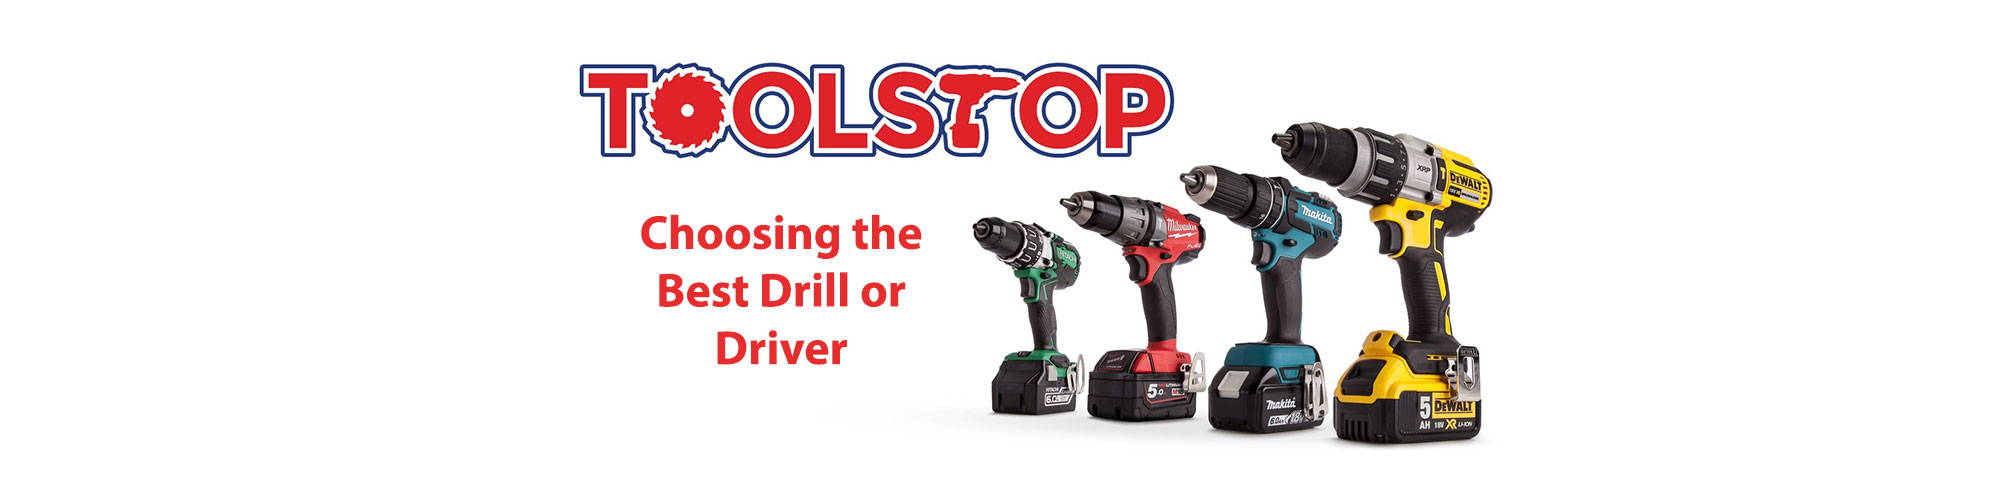 Choosing the Best Drill or Driver A Toolstop Buying Guide